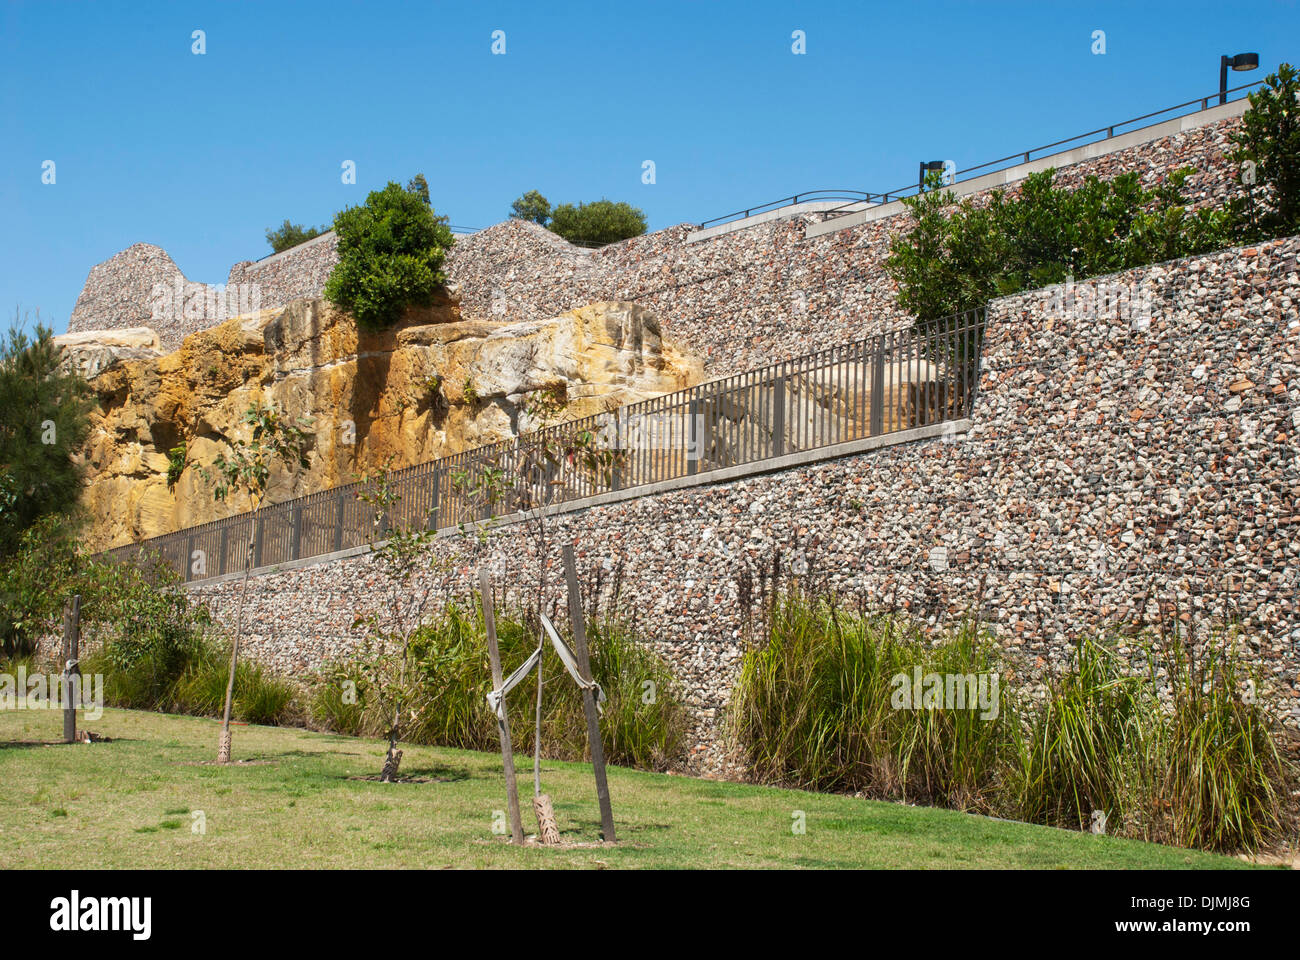 Stone Wall In Wire Mesh Stockfotos & Stone Wall In Wire Mesh Bilder ...